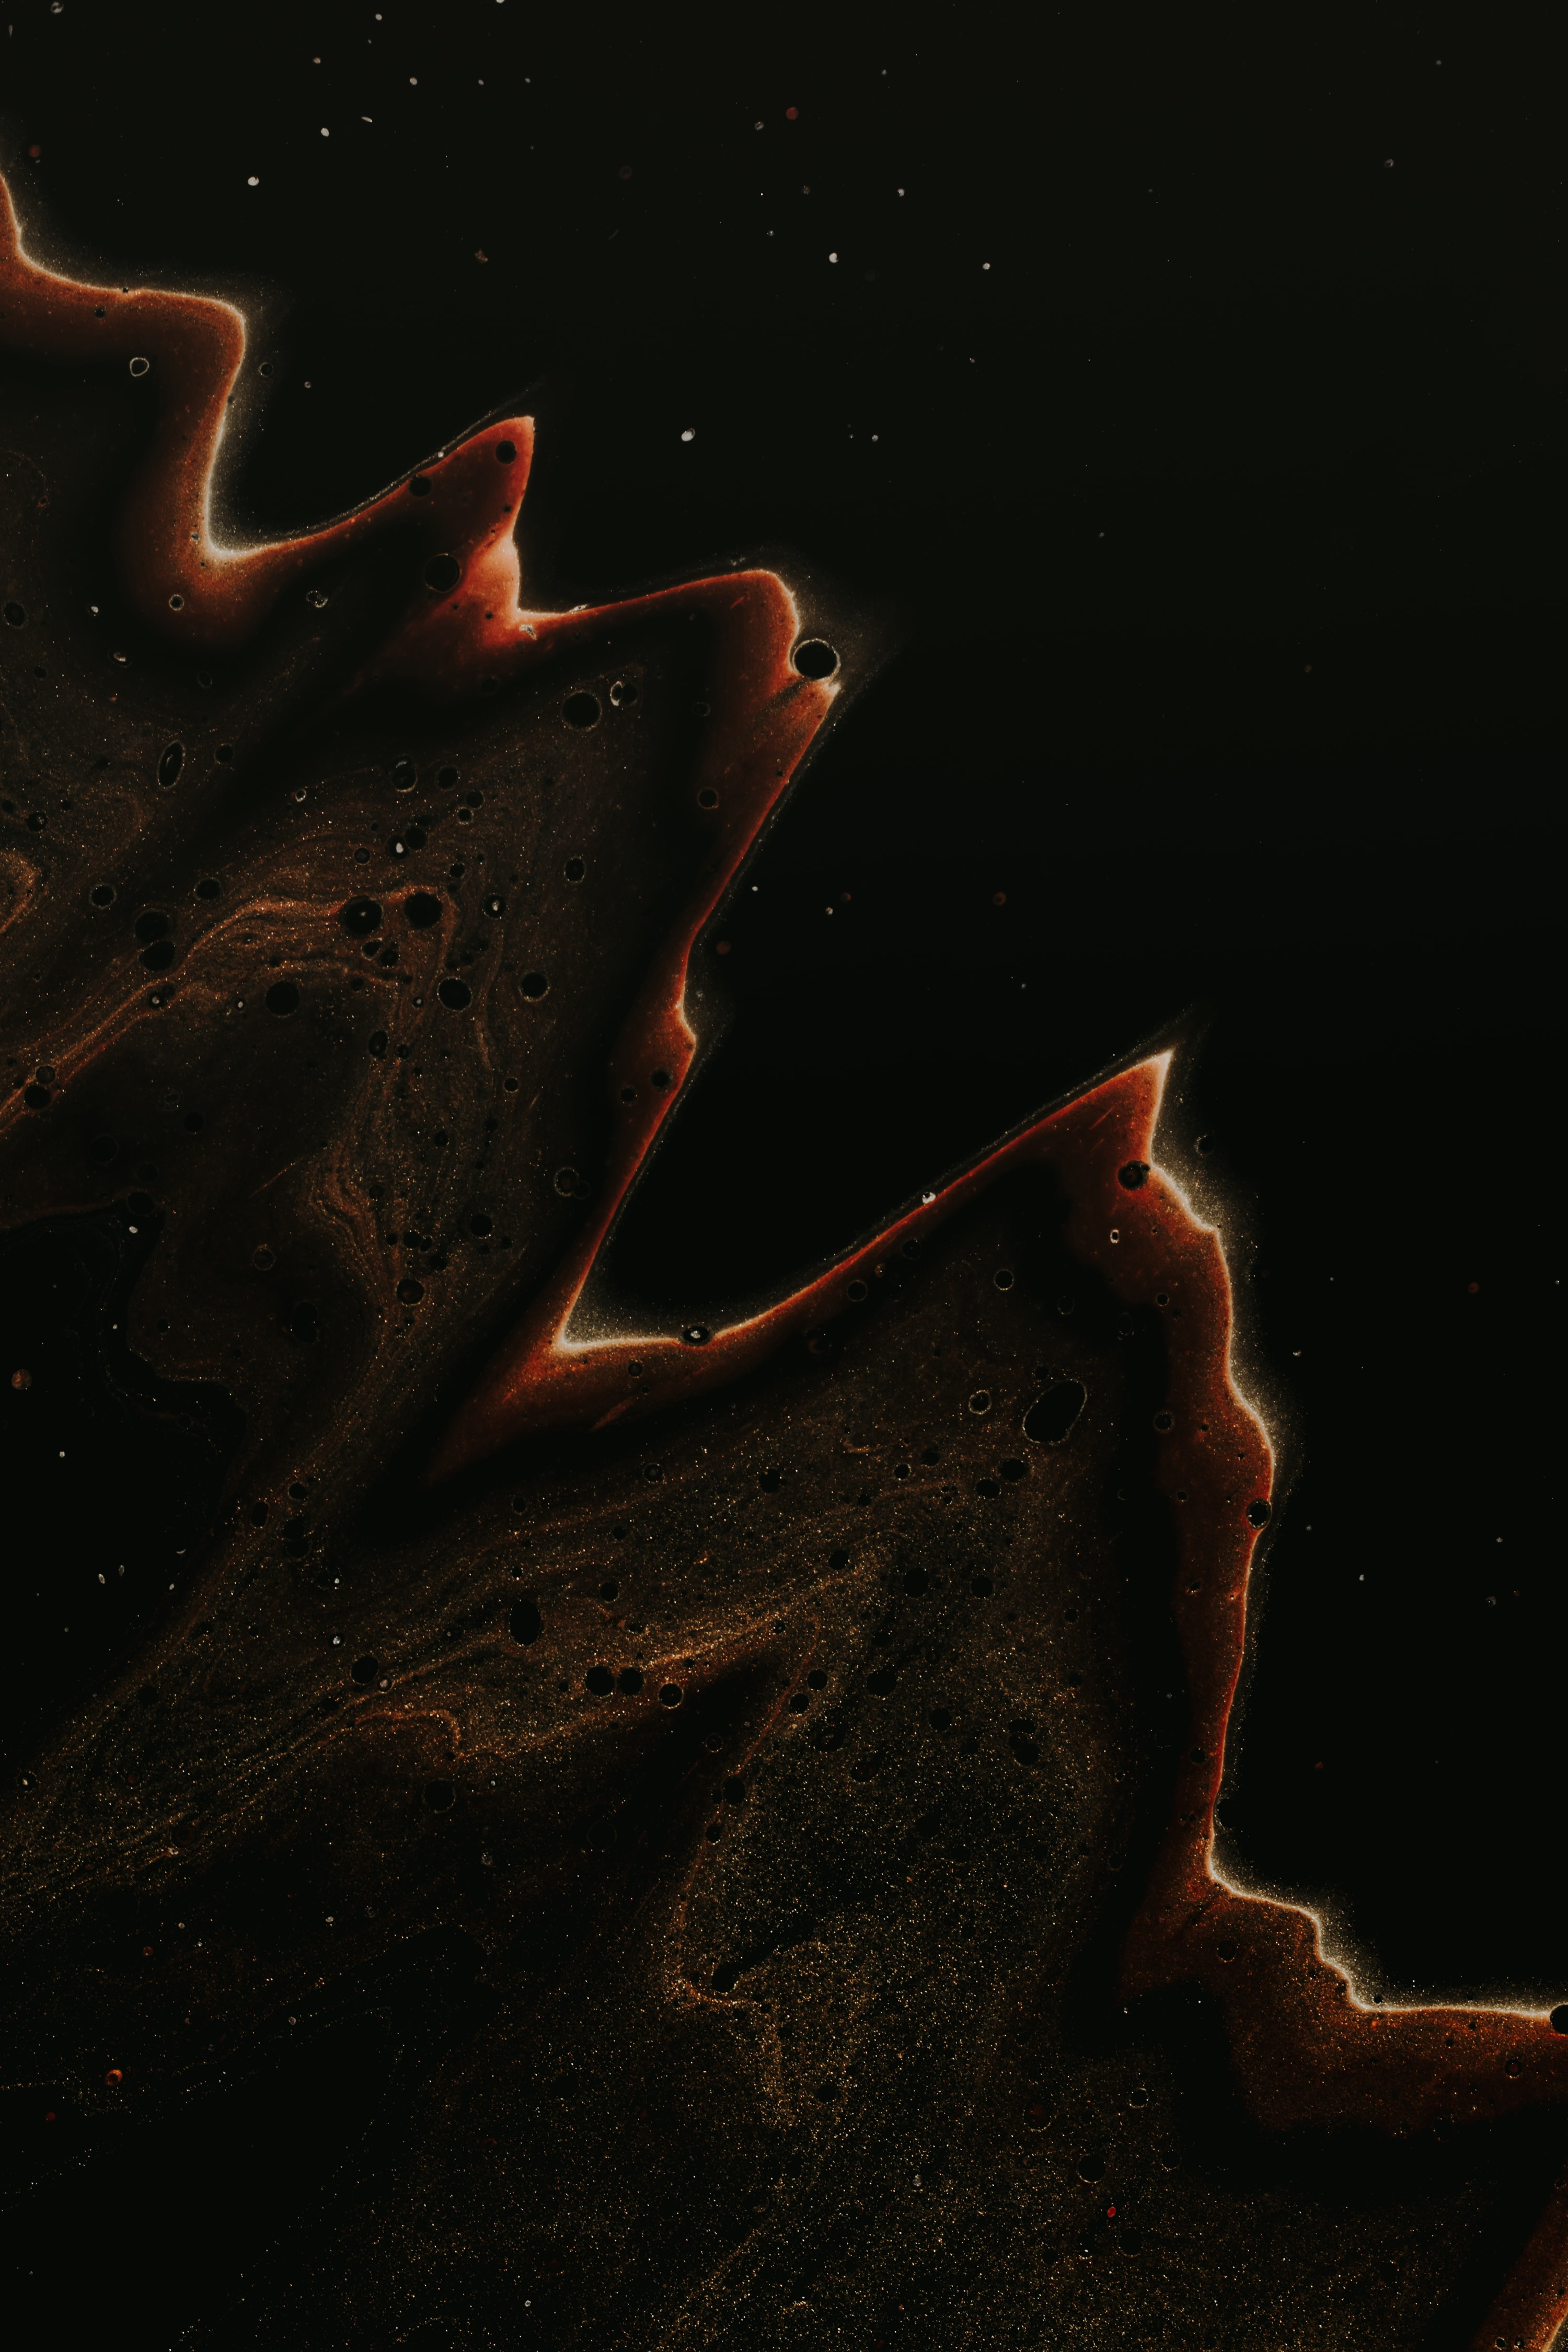 155383 download wallpaper Abstract, Dark, Divorces, Paint, Liquid screensavers and pictures for free